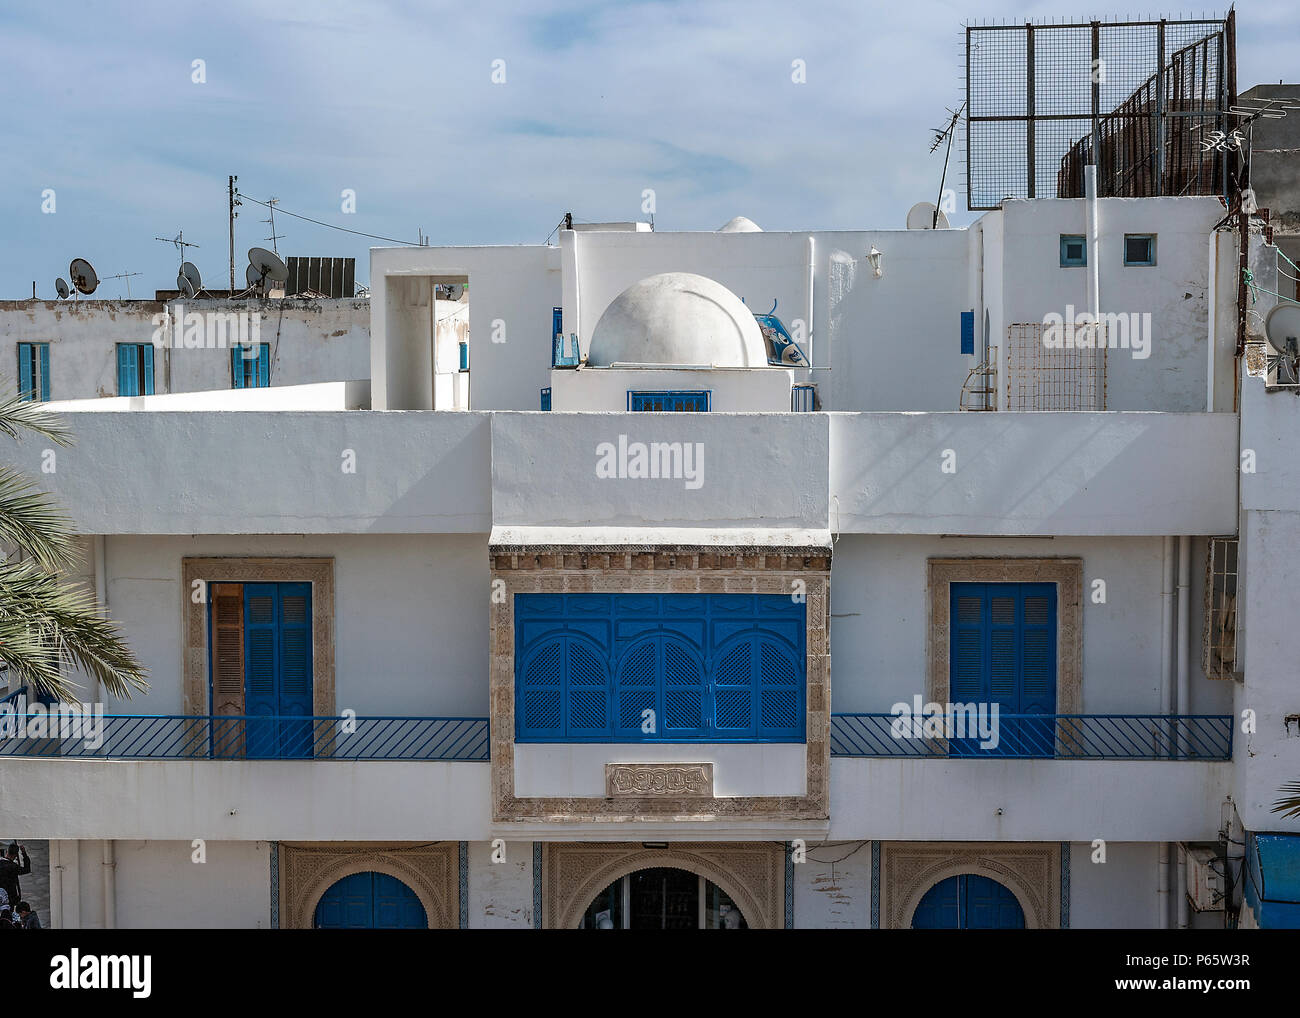 Tunisia, Sousse, the medina. Arab architecture abounds on the facades of balconies of various types, decorated with ornaments. Stock Photo